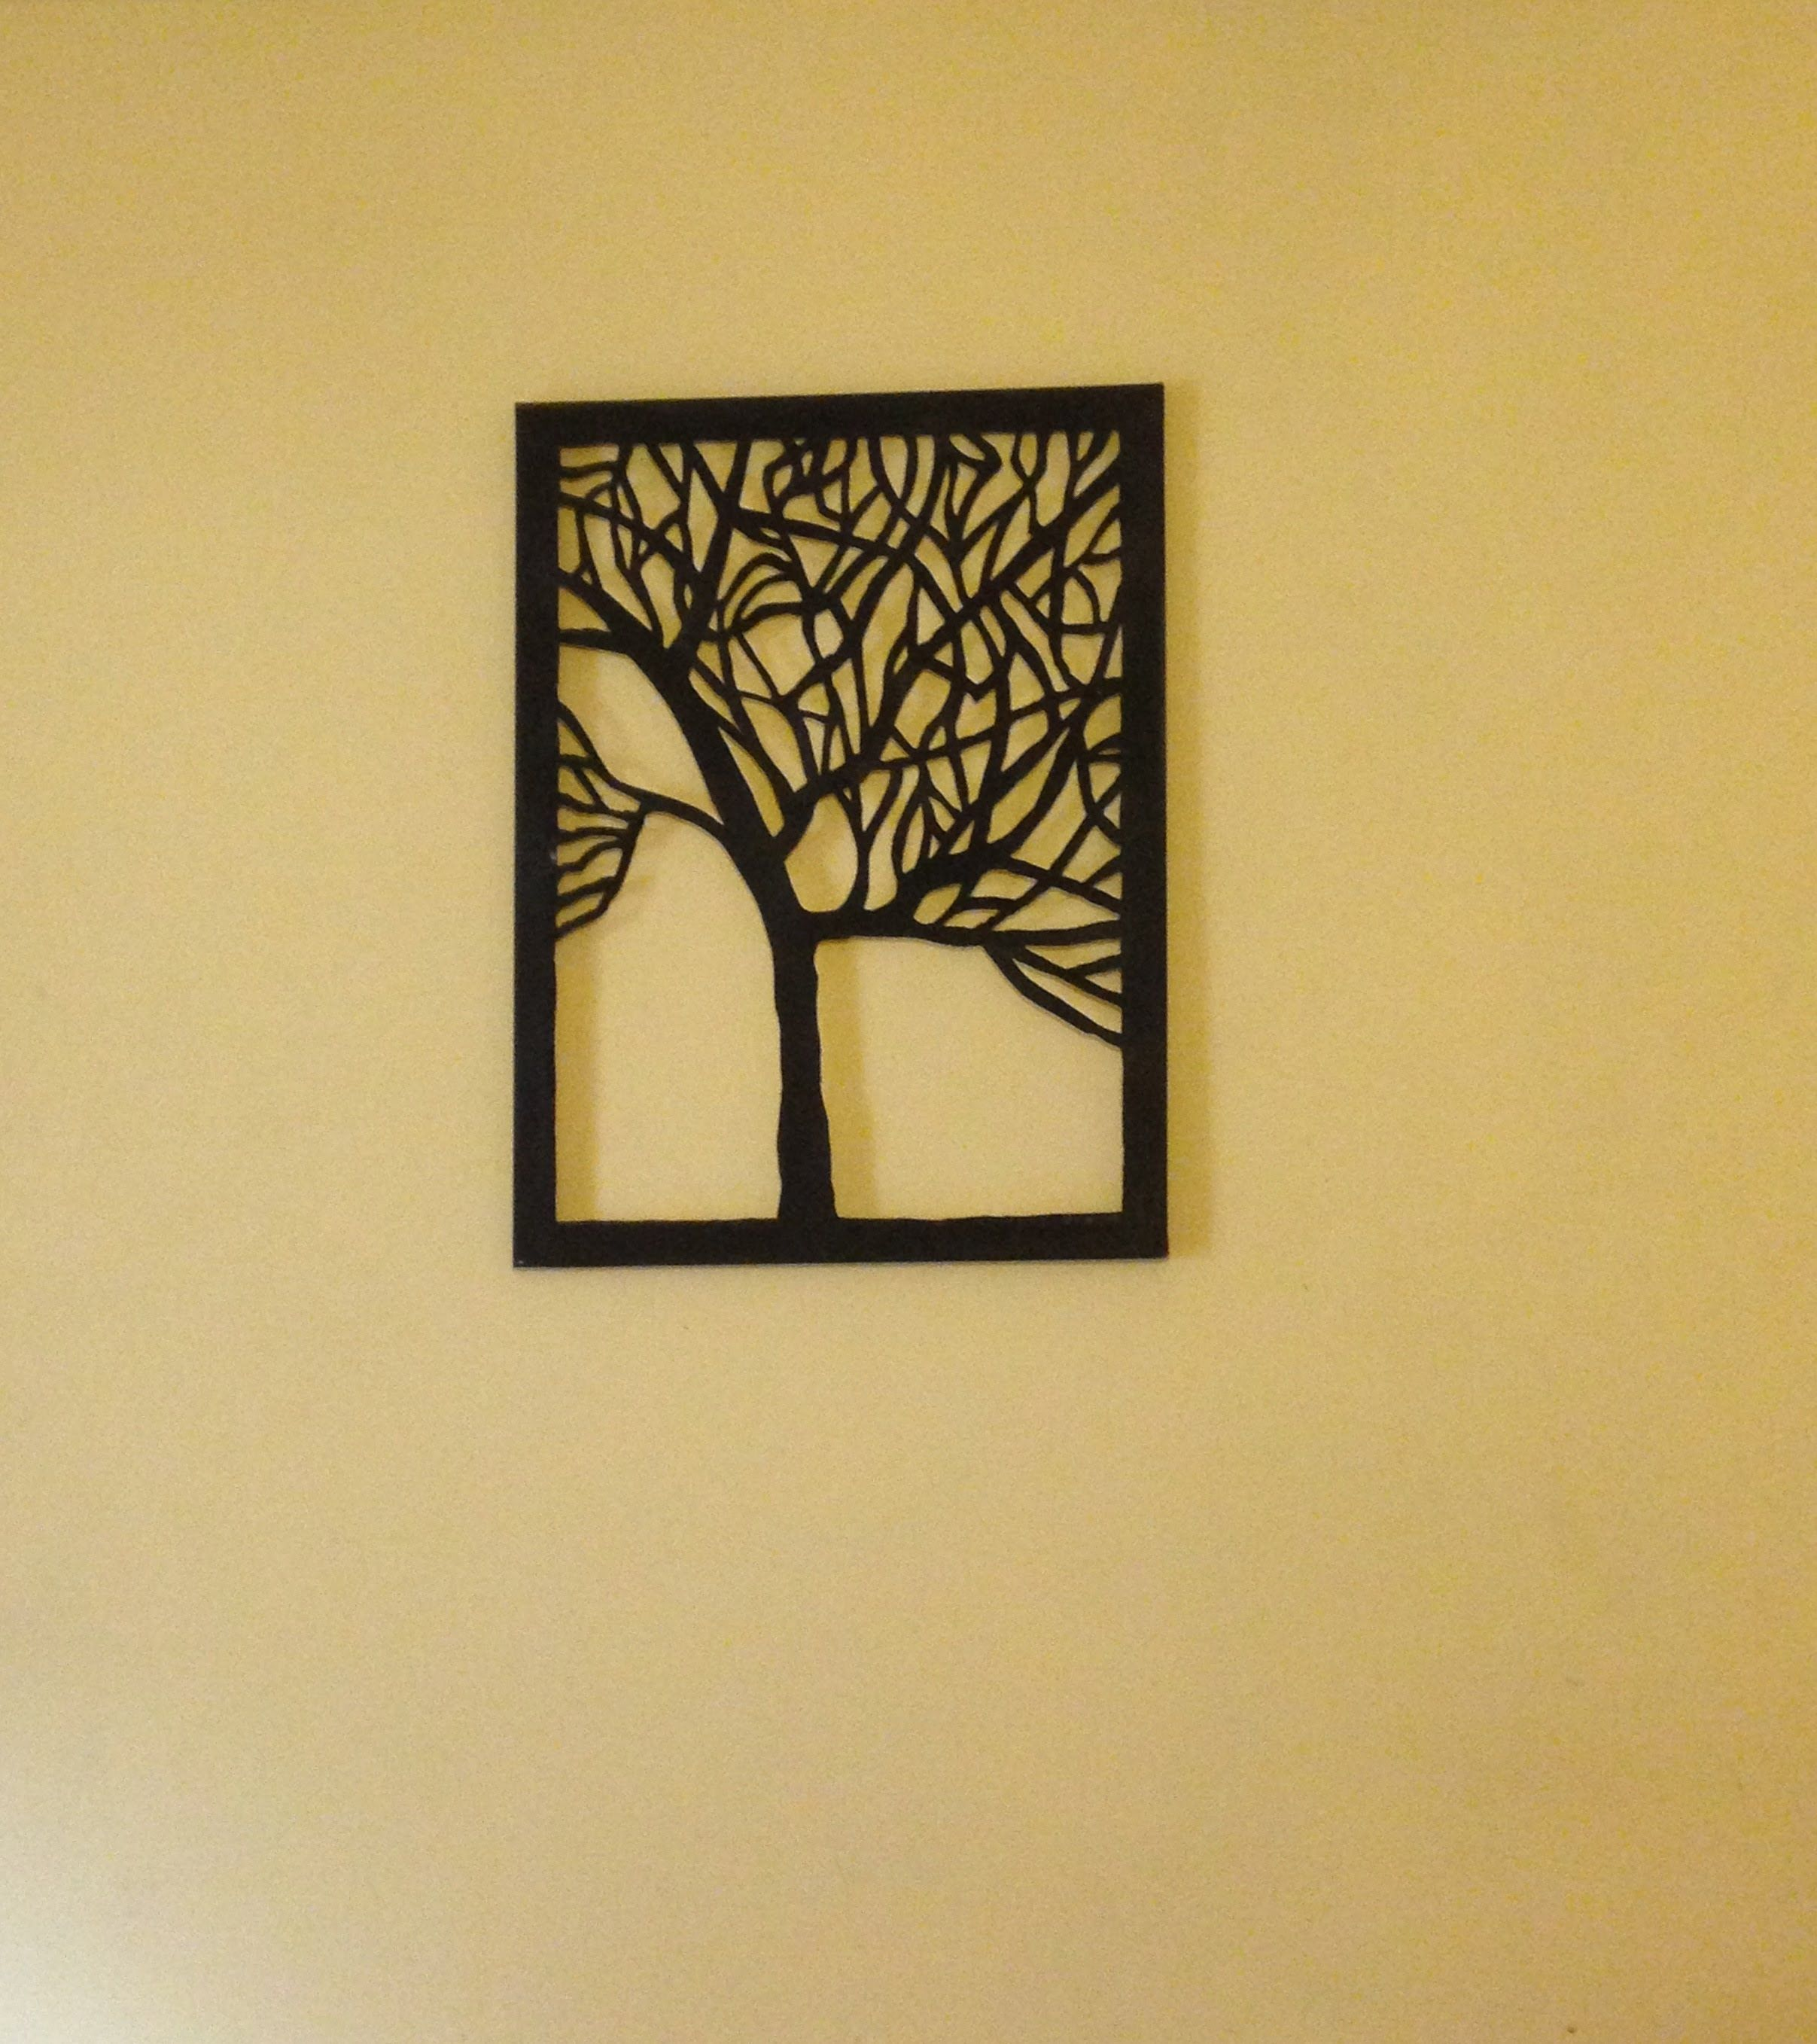 Amazing DIY Canvas Tree Cut Out Wall Art Home Decor Idea